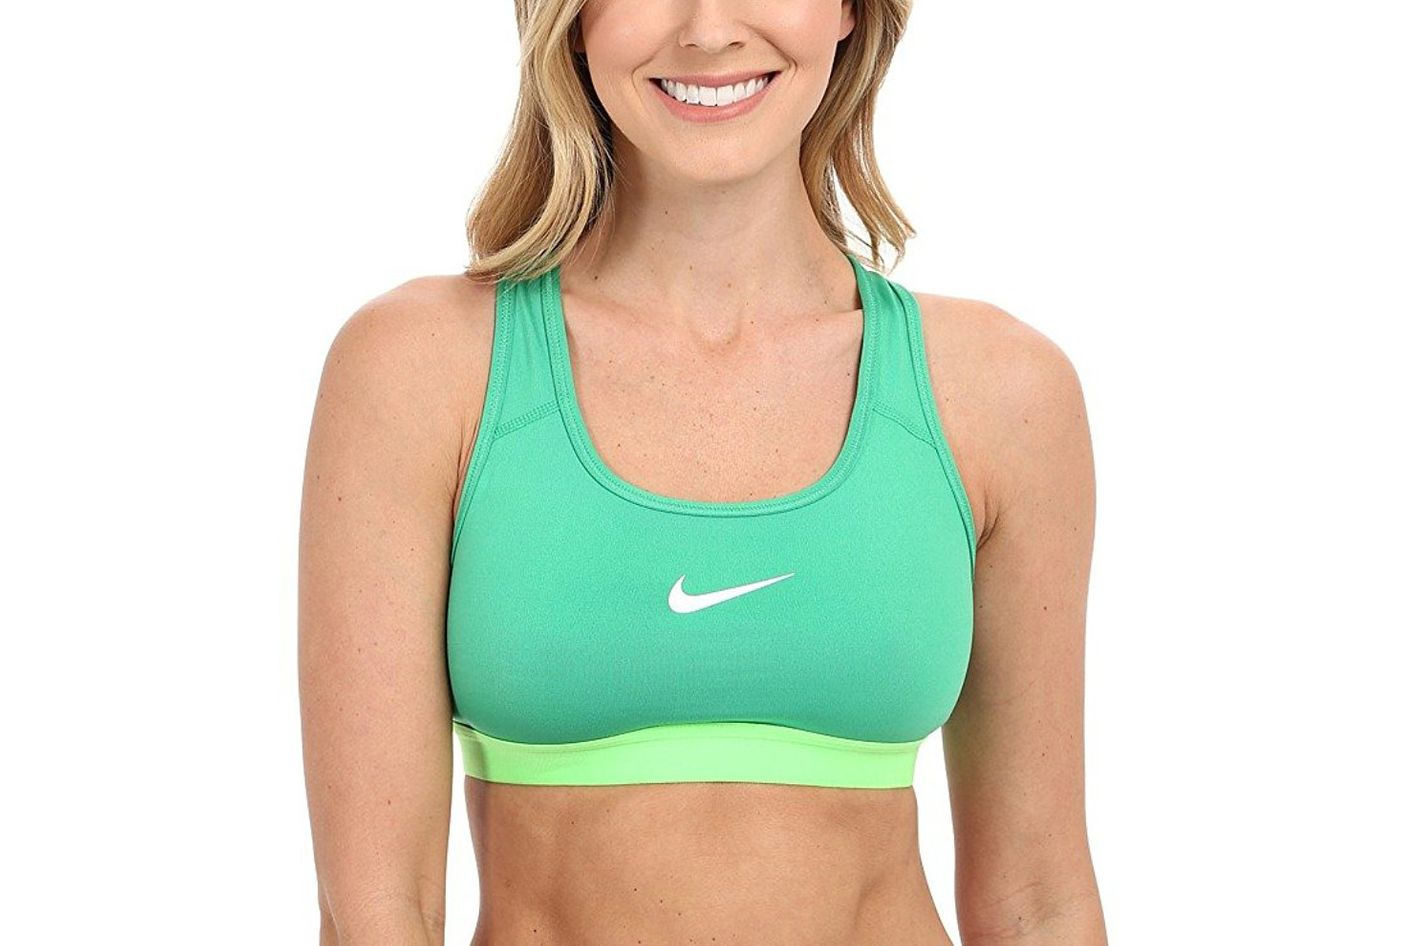 ffbf28636 best bra. Nike Women s Pro Classic Sports Bra at Amazon